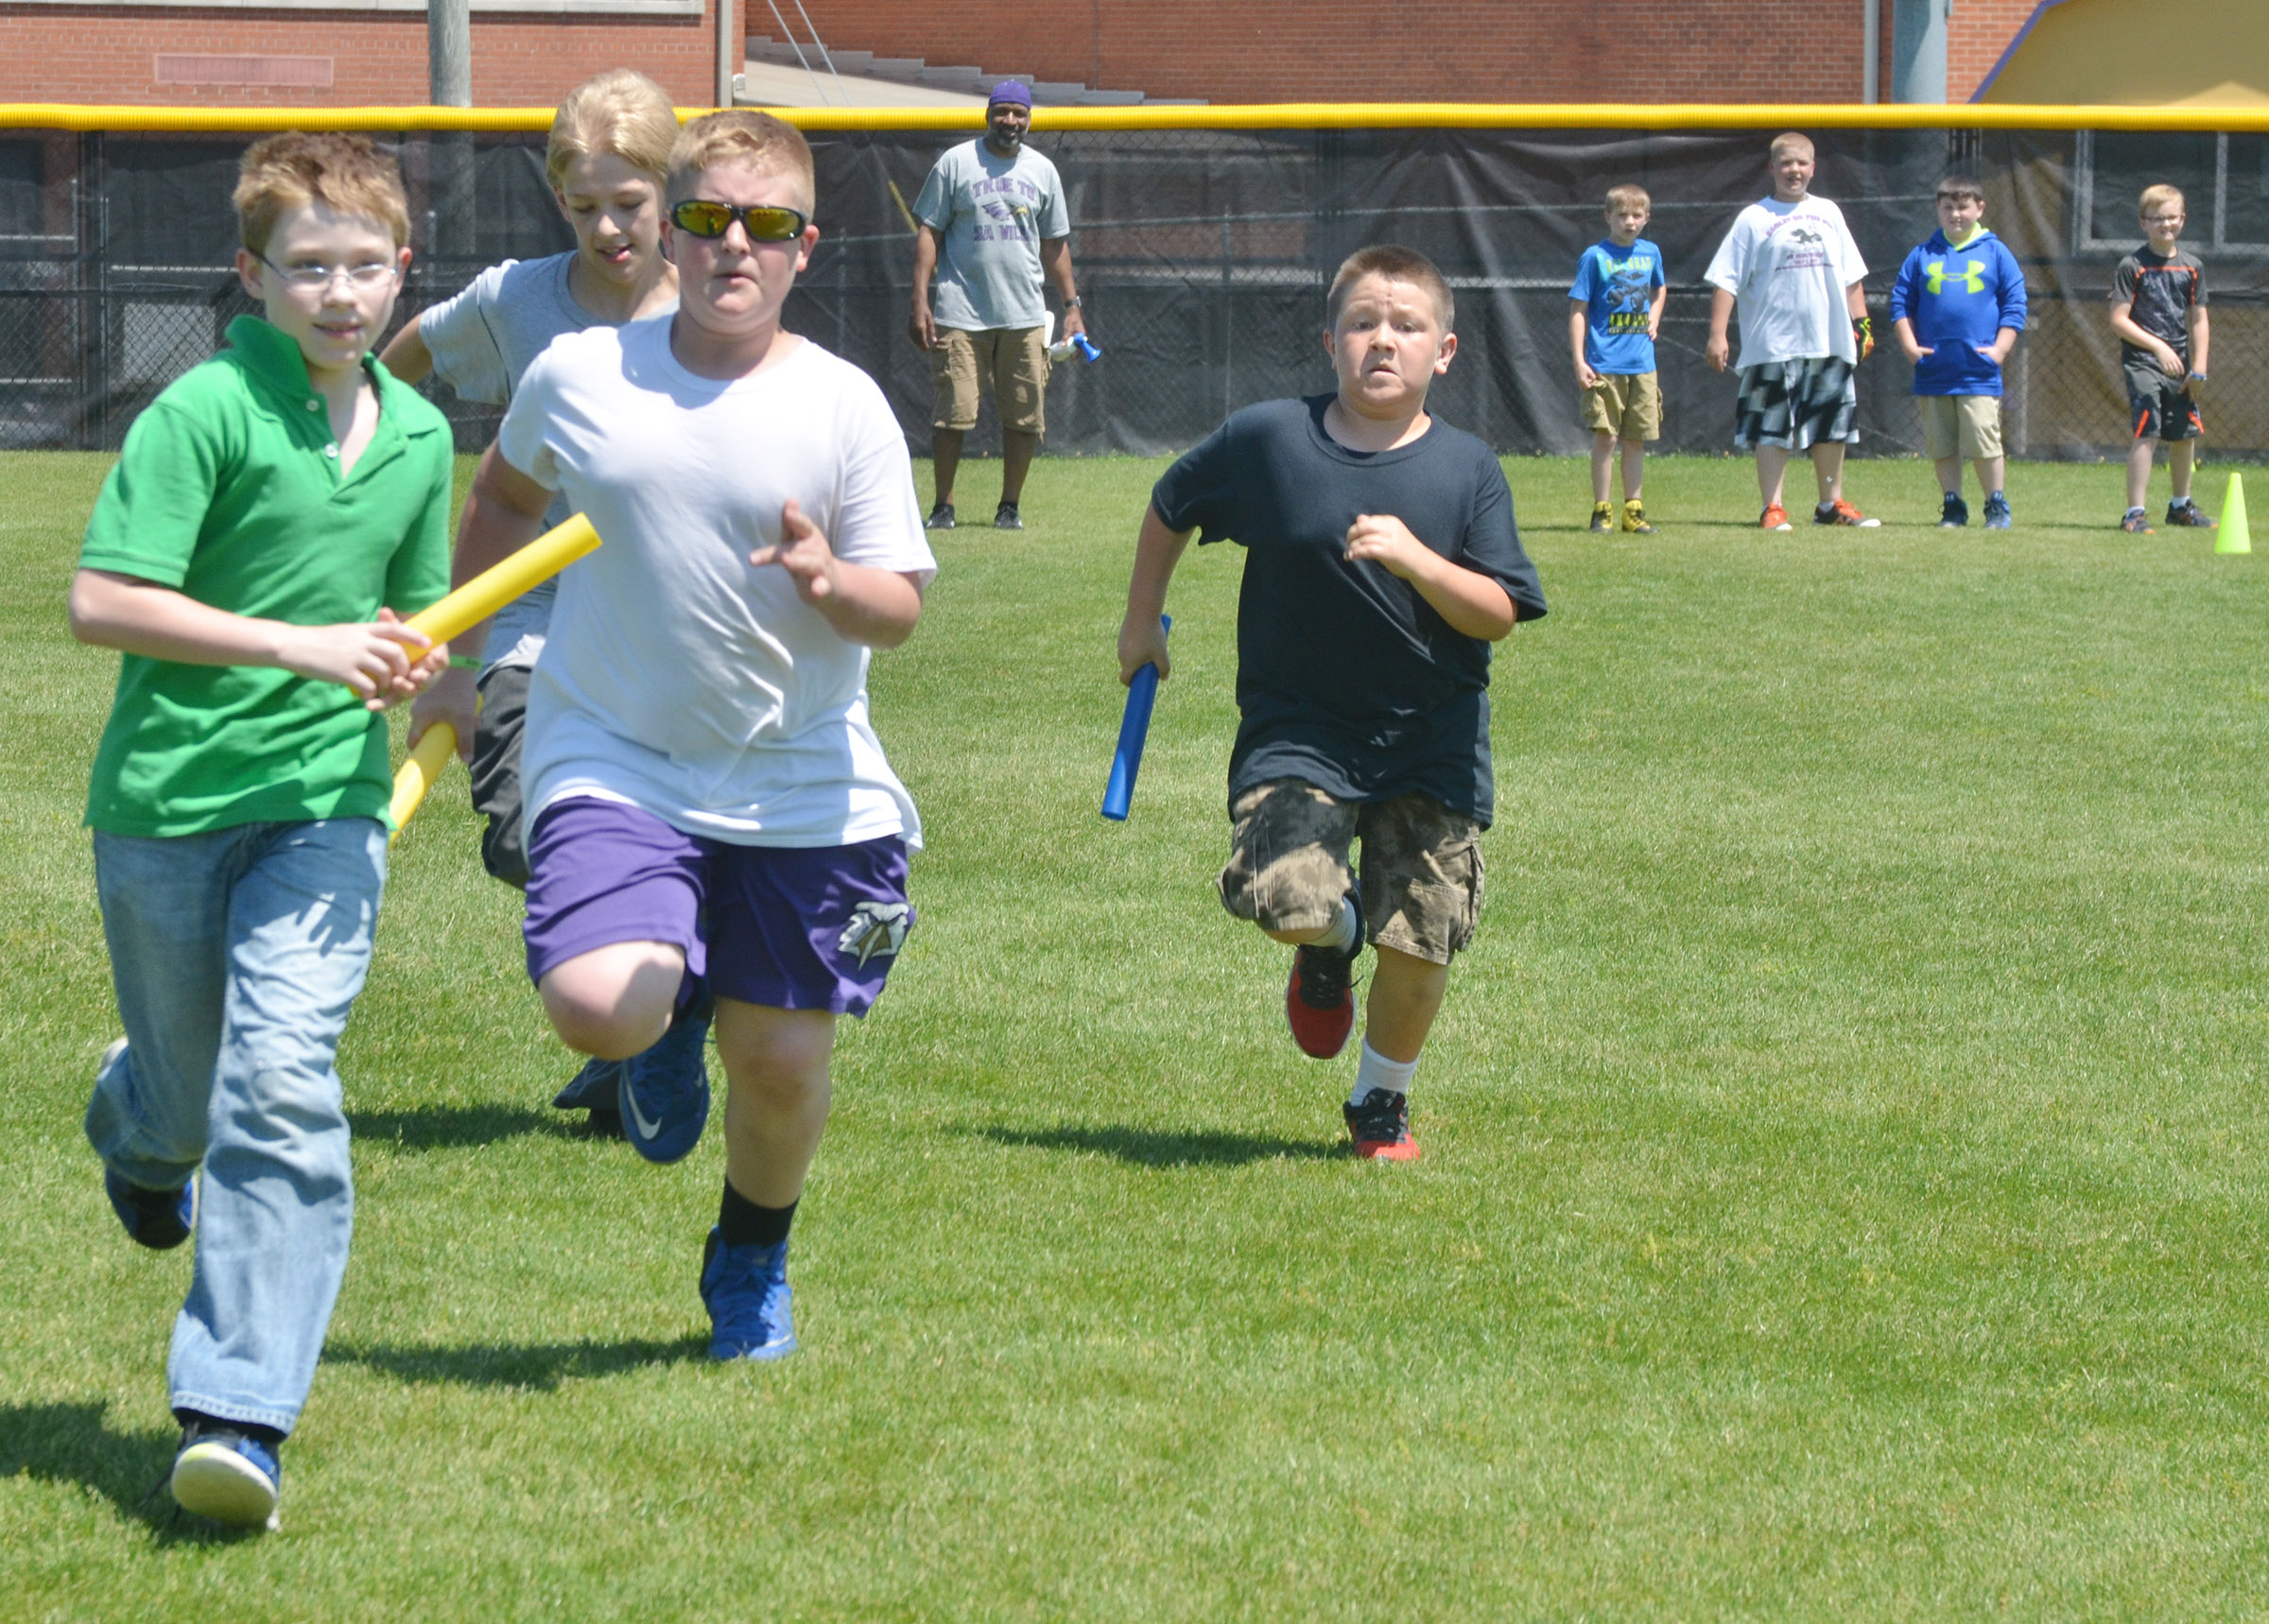 From left, CMS fifth-graders Willie Nunn, Jacob Releford, Lance Knifley and Leo Lamer run in the 4x4 relay race.